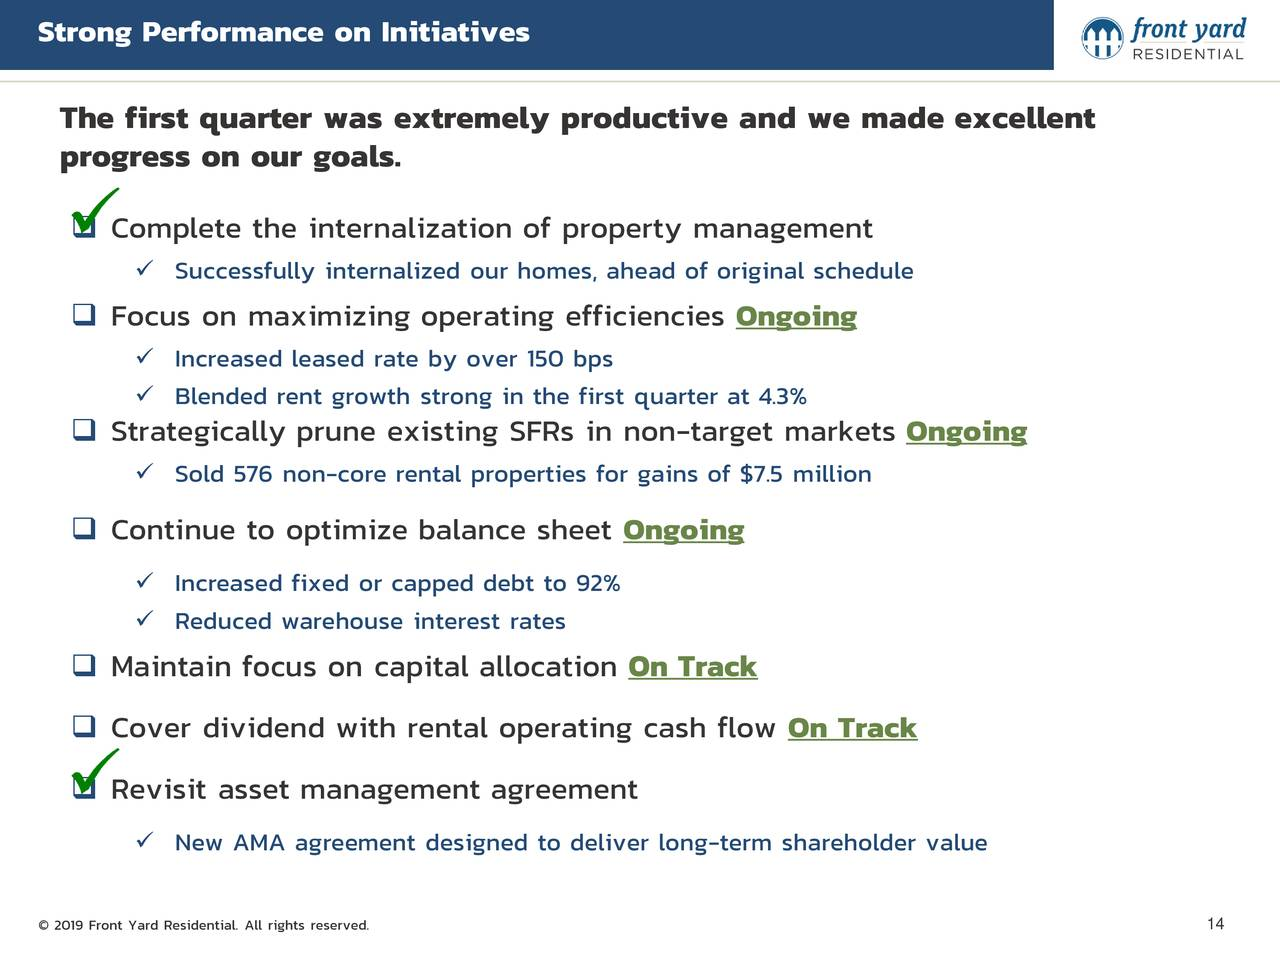 The first quarter was extremely productive and we made excellent progress on our goals.  Complete the internalization of property management  Successfully internalized our homes, ahead of original schedule  Focus on maximizing operating efficiencies Ongoing  Increased leased rate by over 150 bps  Blended rent growth strong in the first quarter at 4.3%  Strategically prune existing SFRs in non-target markets Ongoing  Sold 576 non-core rental properties for gains of $7.5 million  Continue to optimize balance sheet Ongoing  Increased fixed or capped debt to 92%  Reduced warehouse interest rates  Maintain focus on capital allocation On Track  Cover dividend with rental operating cash flow On Track  Revisit asset management agreement  New AMA agreement designed to deliver long-term shareholder value © 2019 Front Yard Residential. All rights reserved. 14